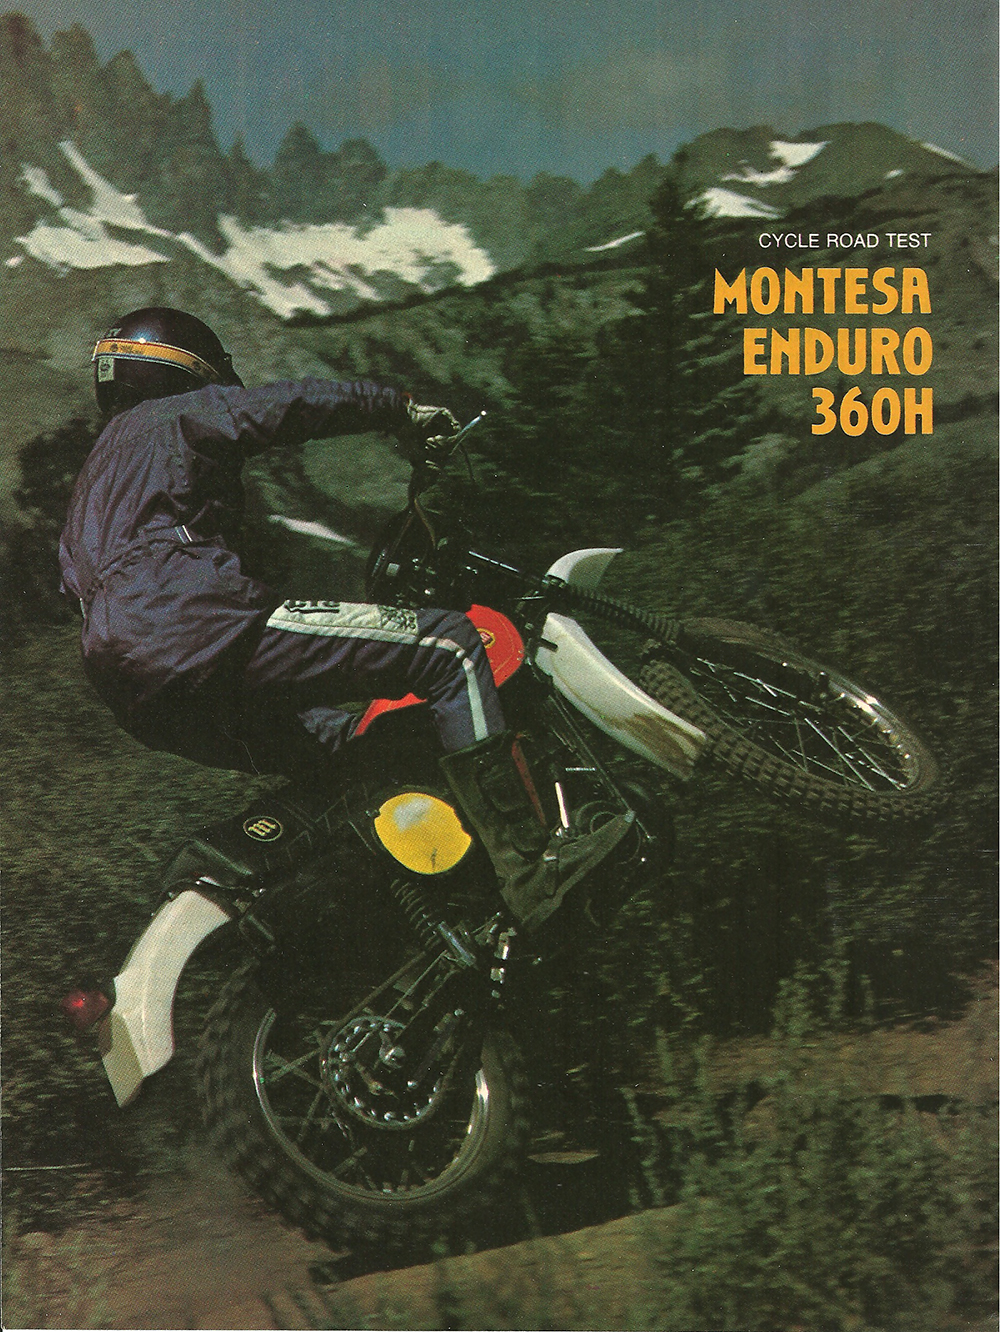 1978 Montesa enduro 360H road test 01.jpg